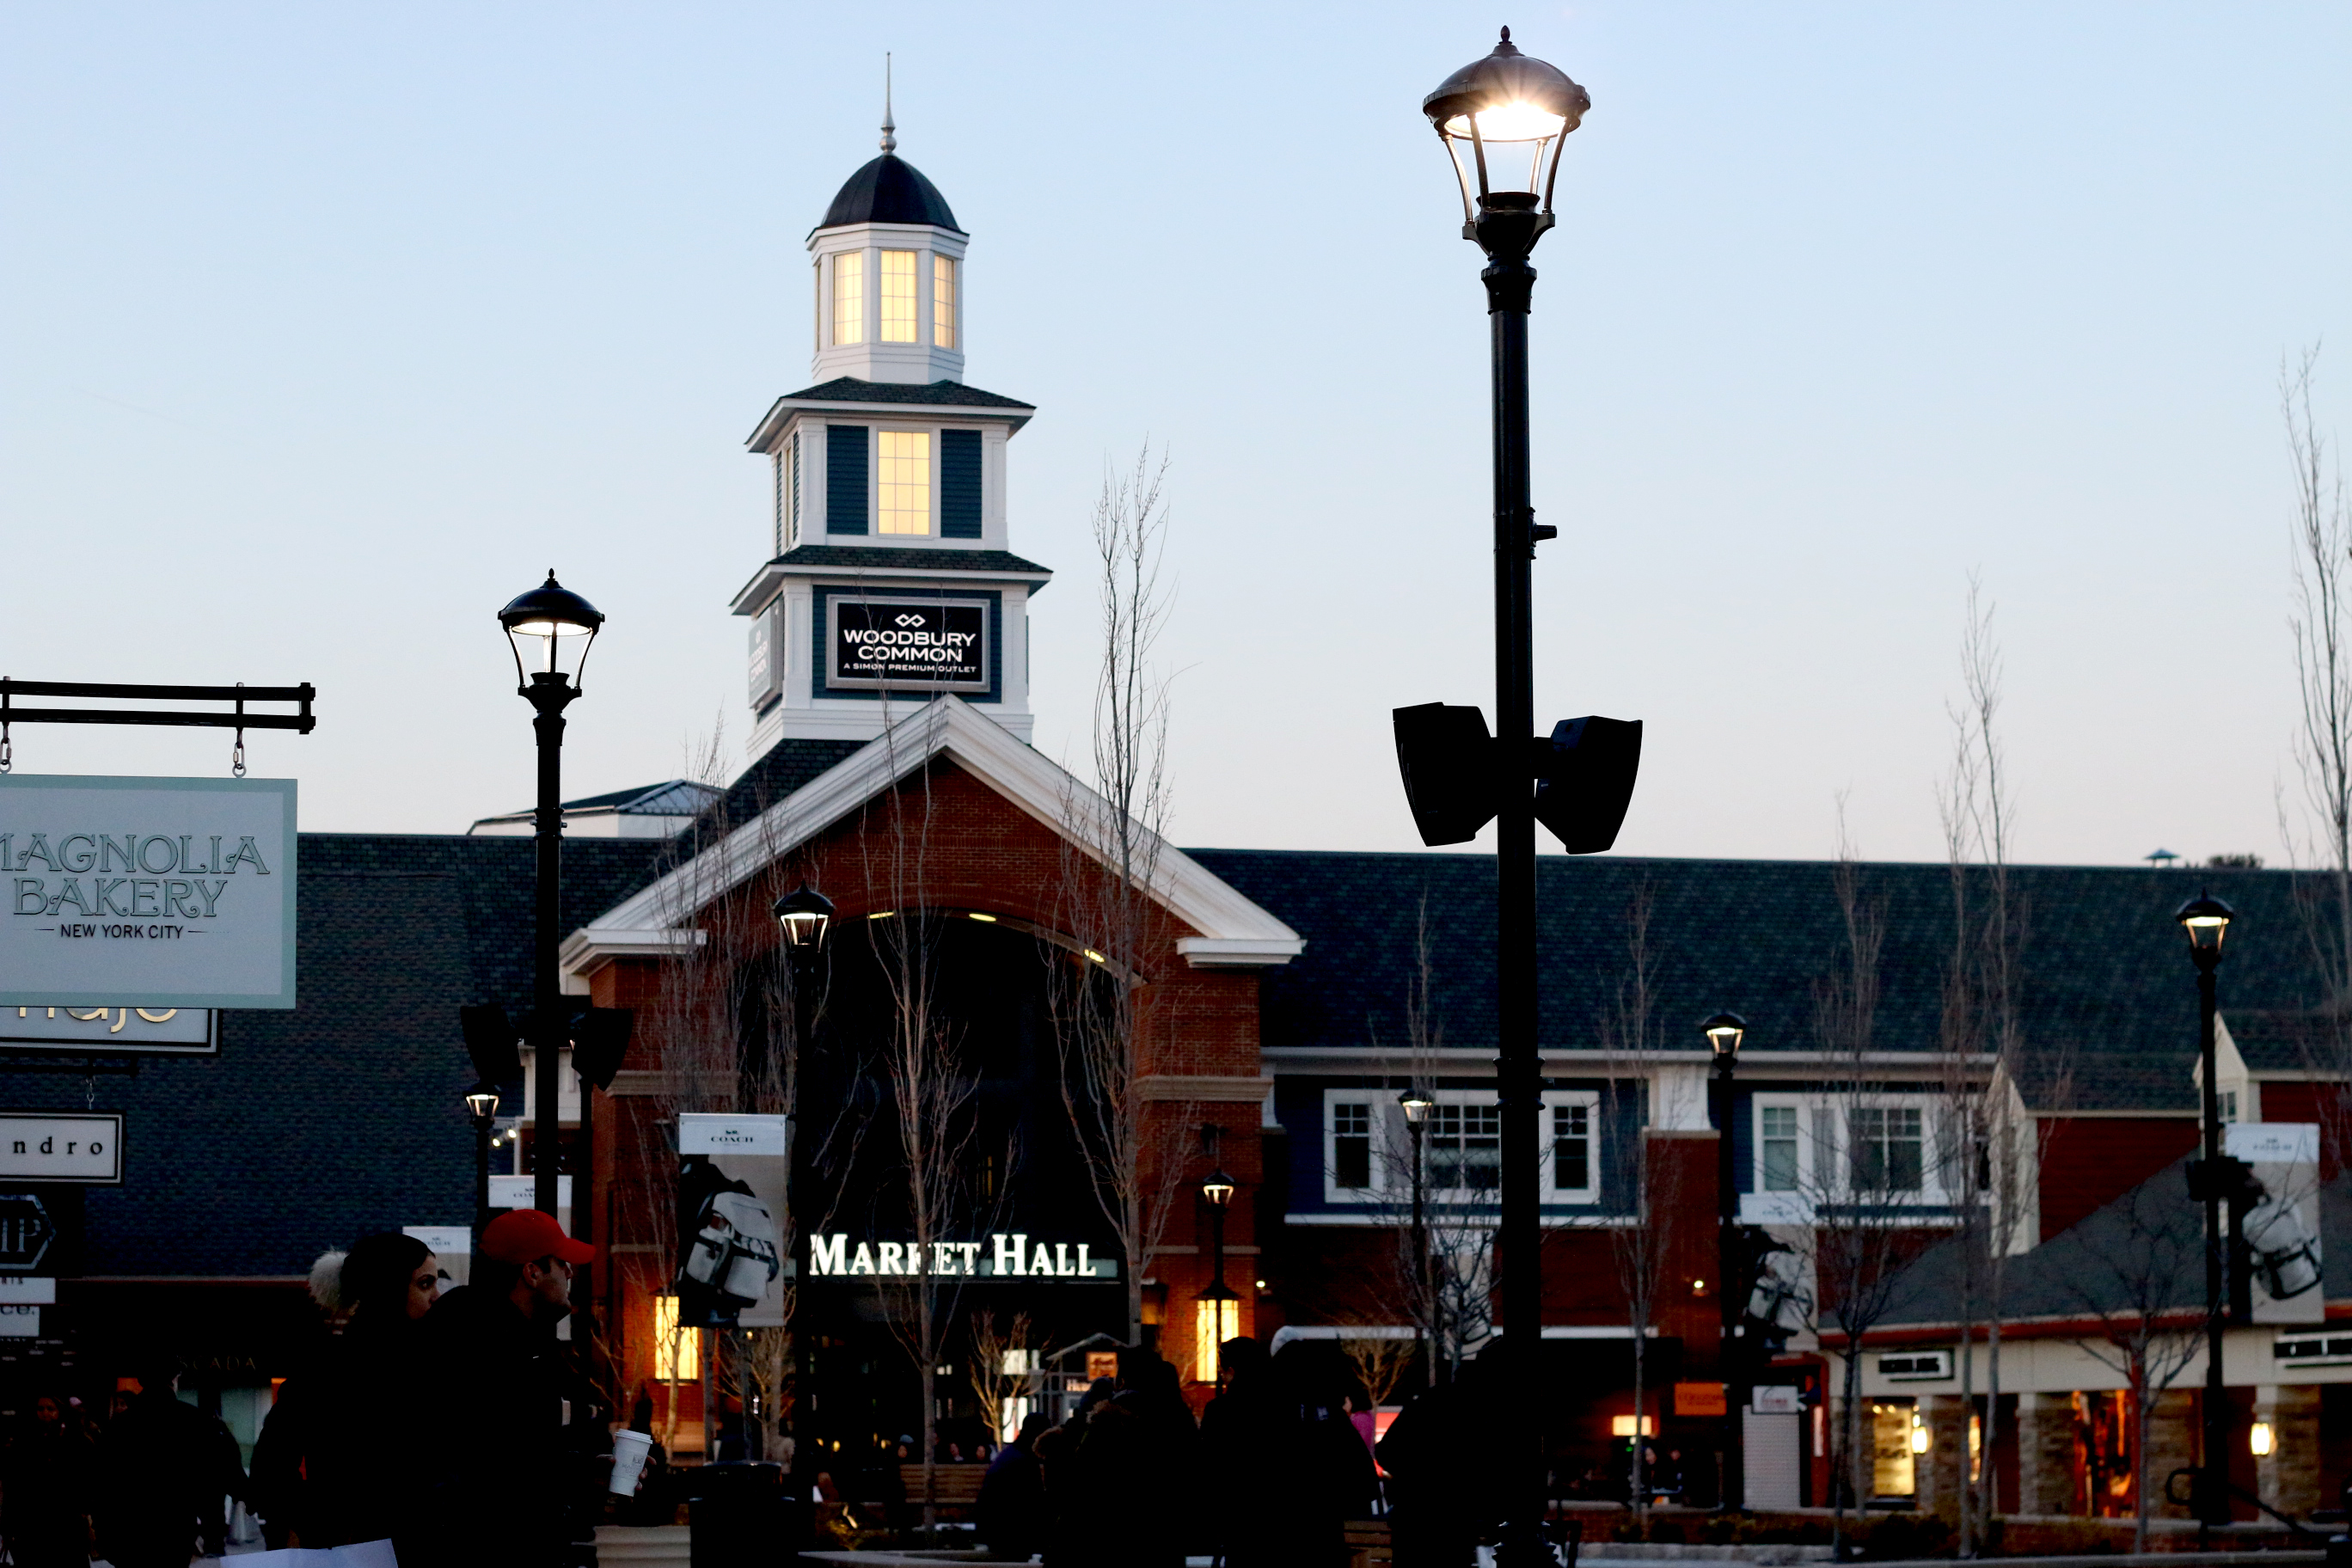 WOODBURY COMMON OUTLET MALL REVIEW